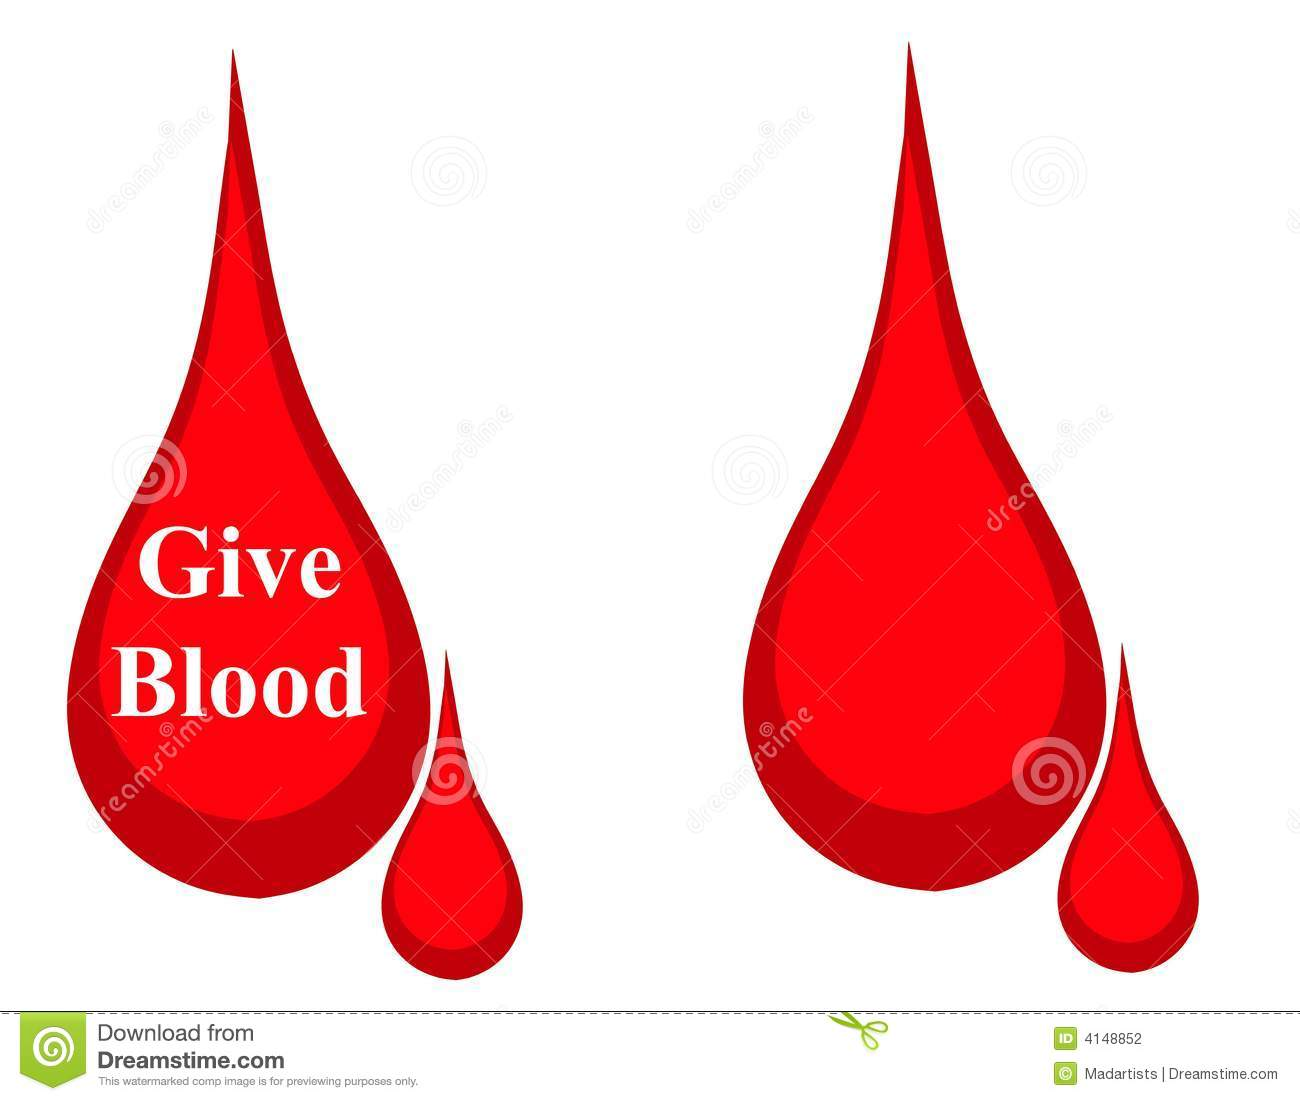 Drop Of Blood   One With The Words  Give Blood  And The Other Blank